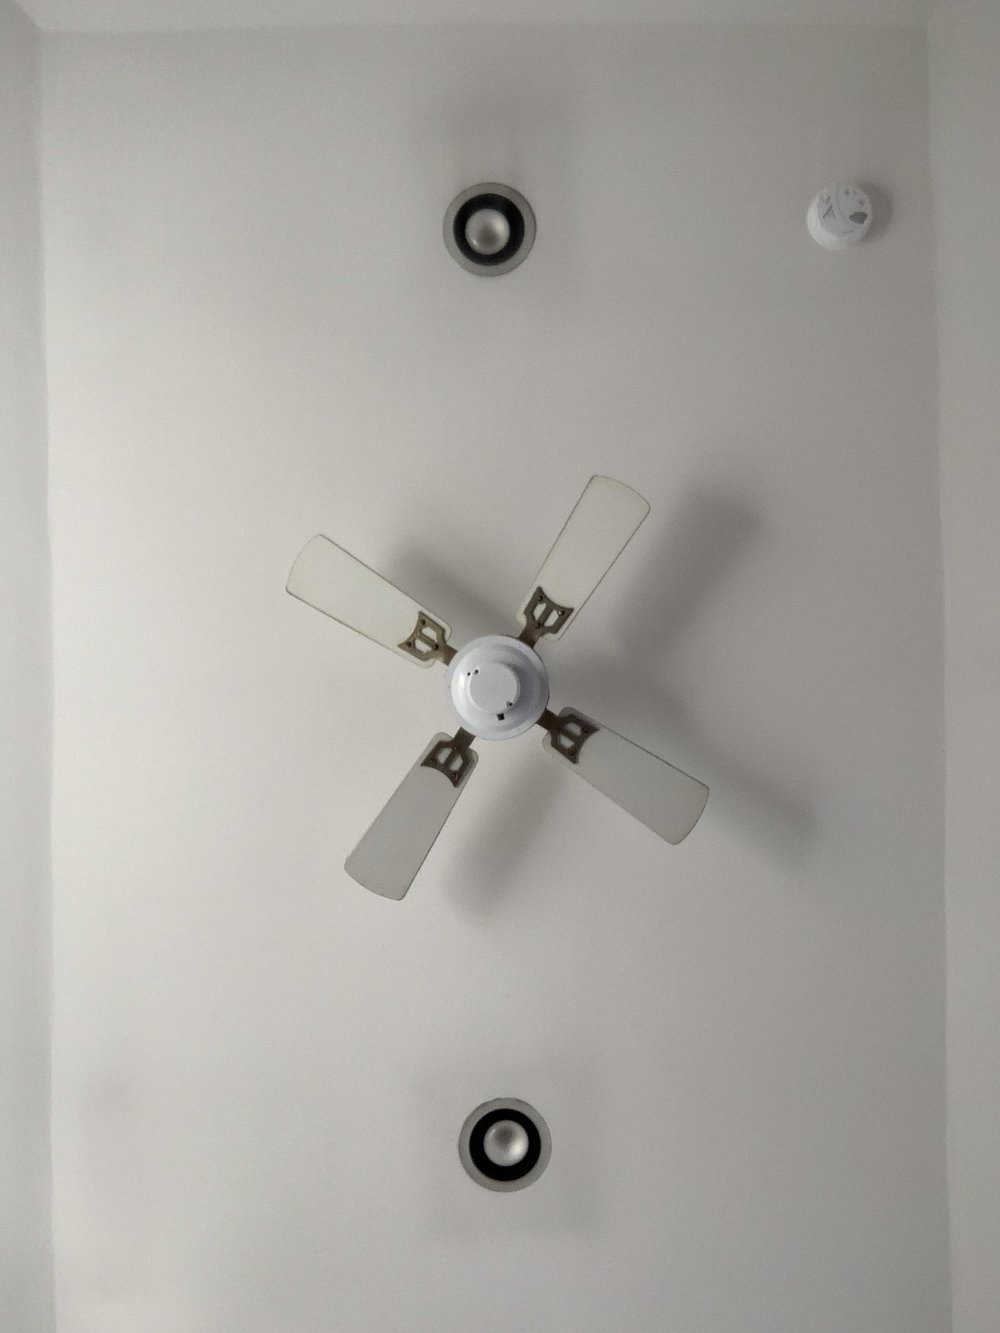 Update the fan and the recessed lighting